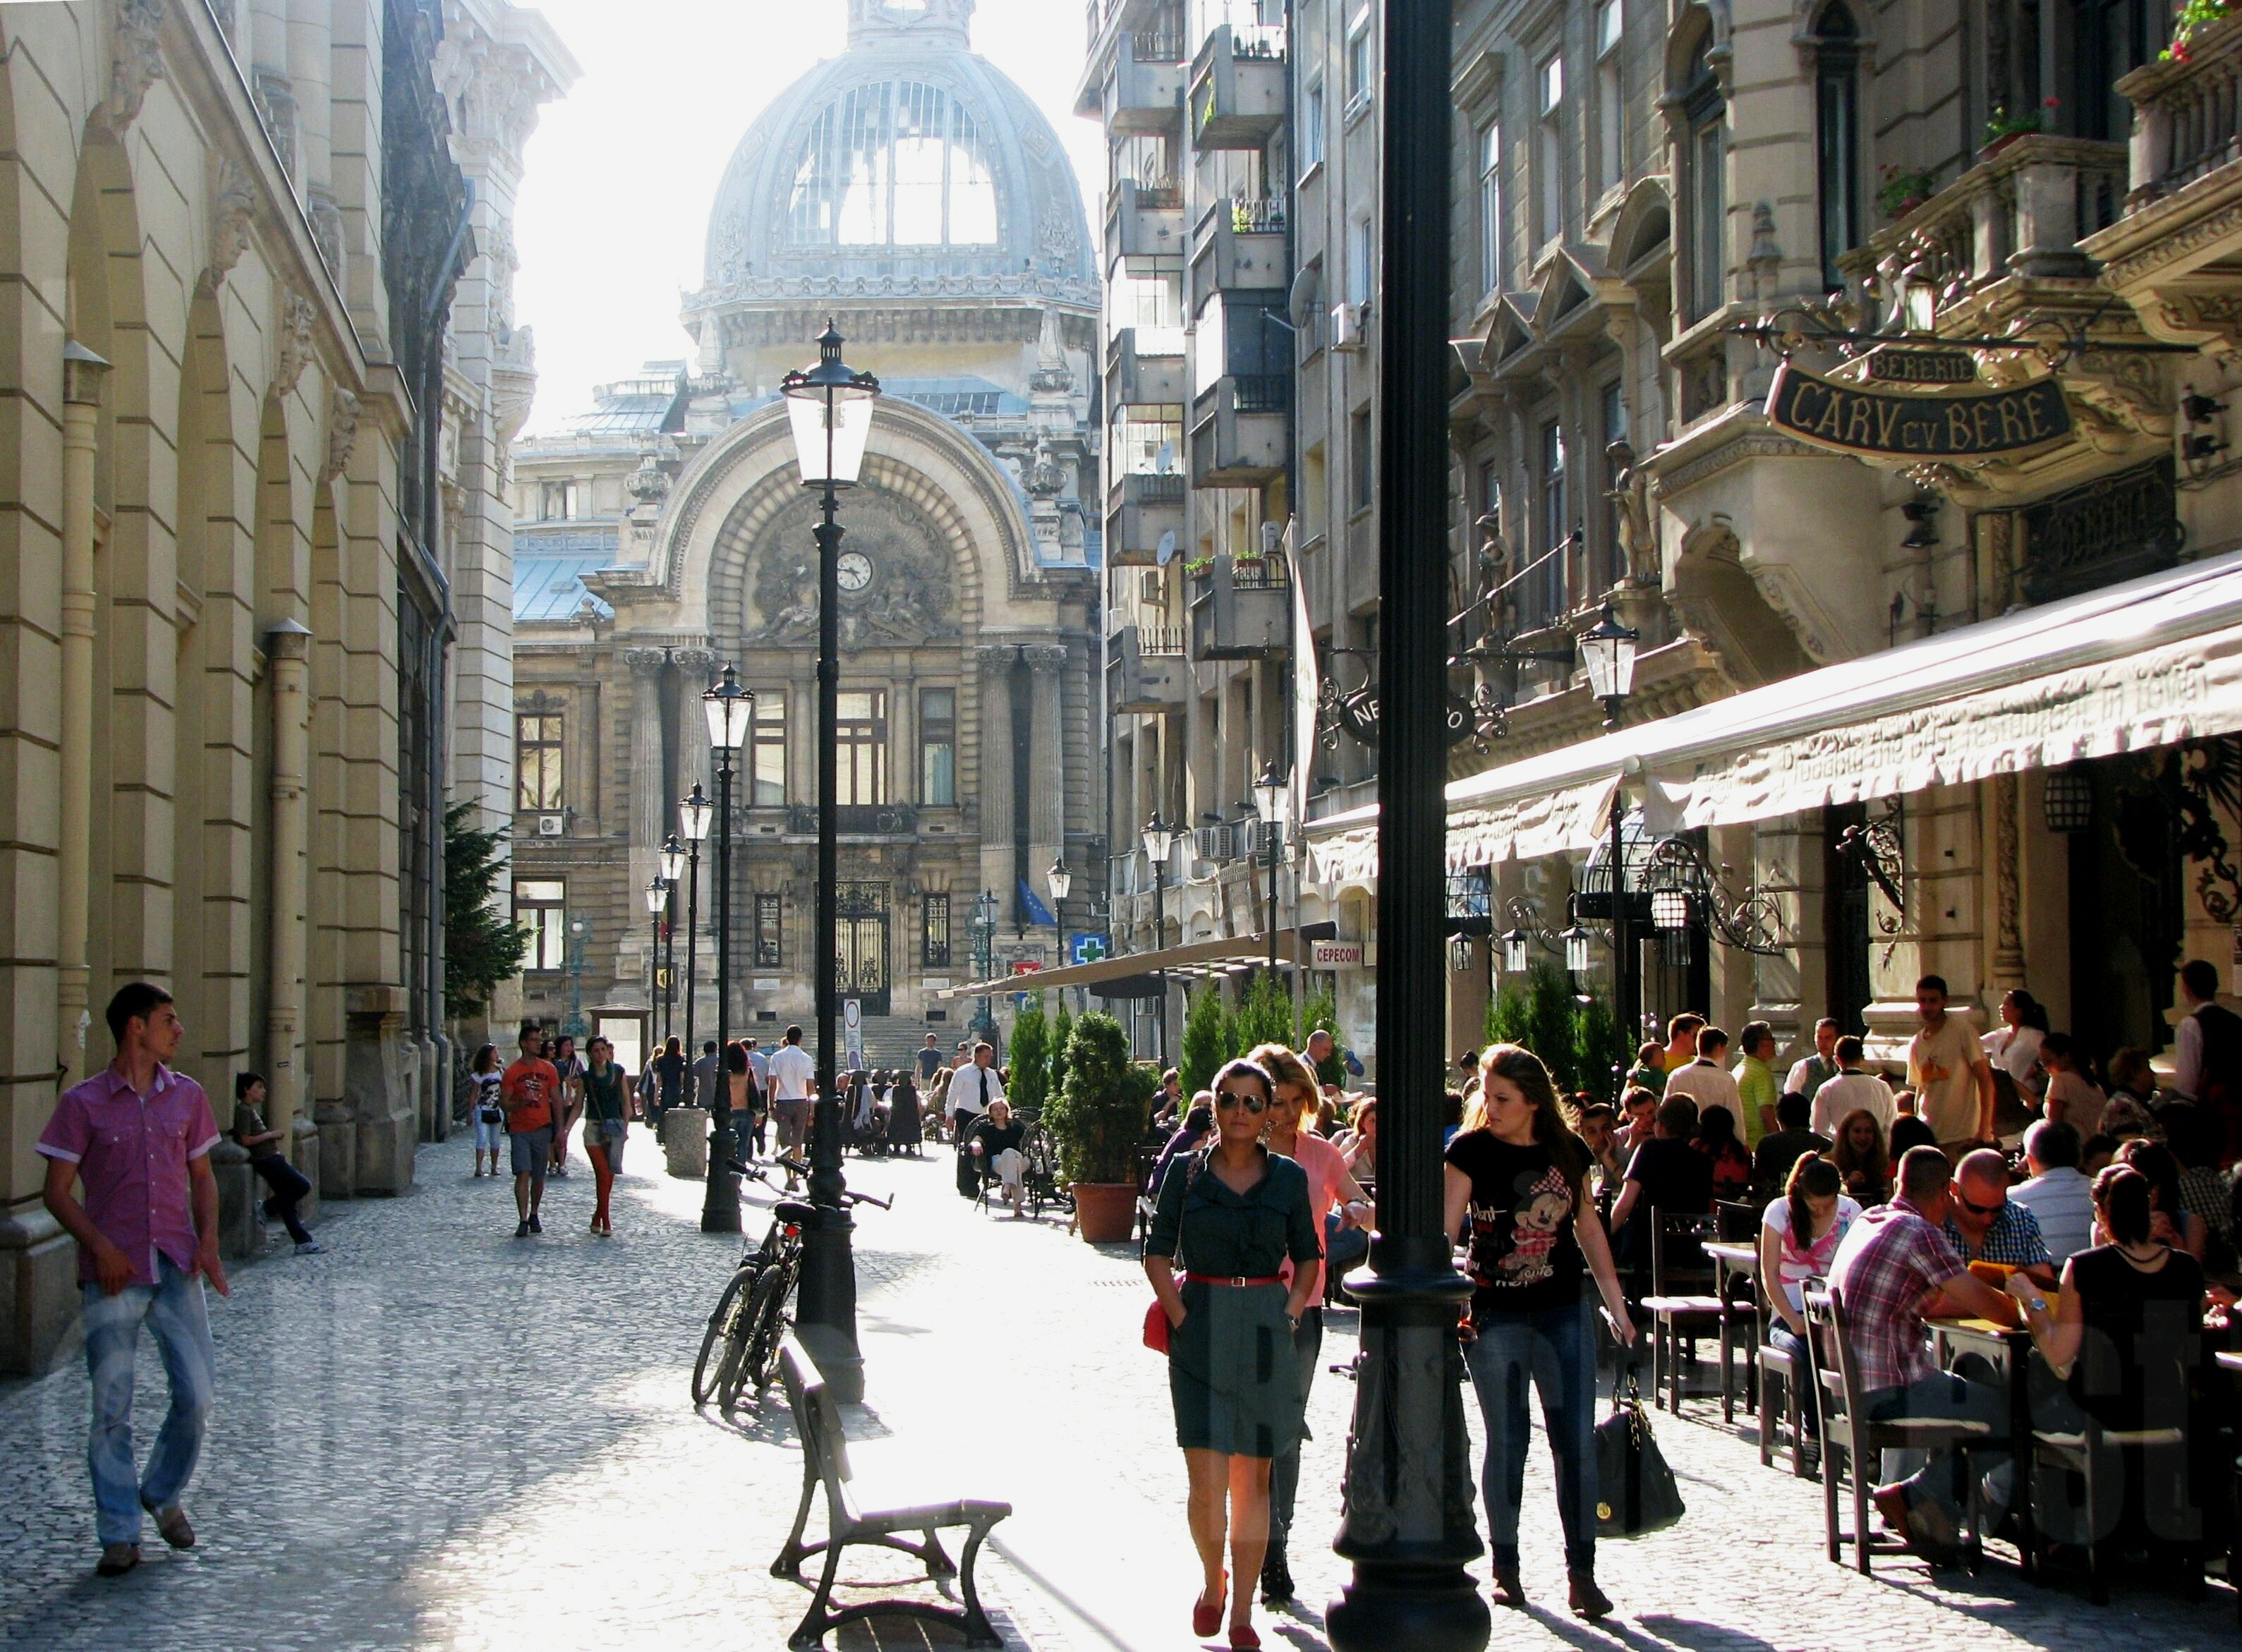 Bucharest Romania  City pictures : Caru' cu Bere 1879 | Bucharest & Romania Tours by Cris Private ...